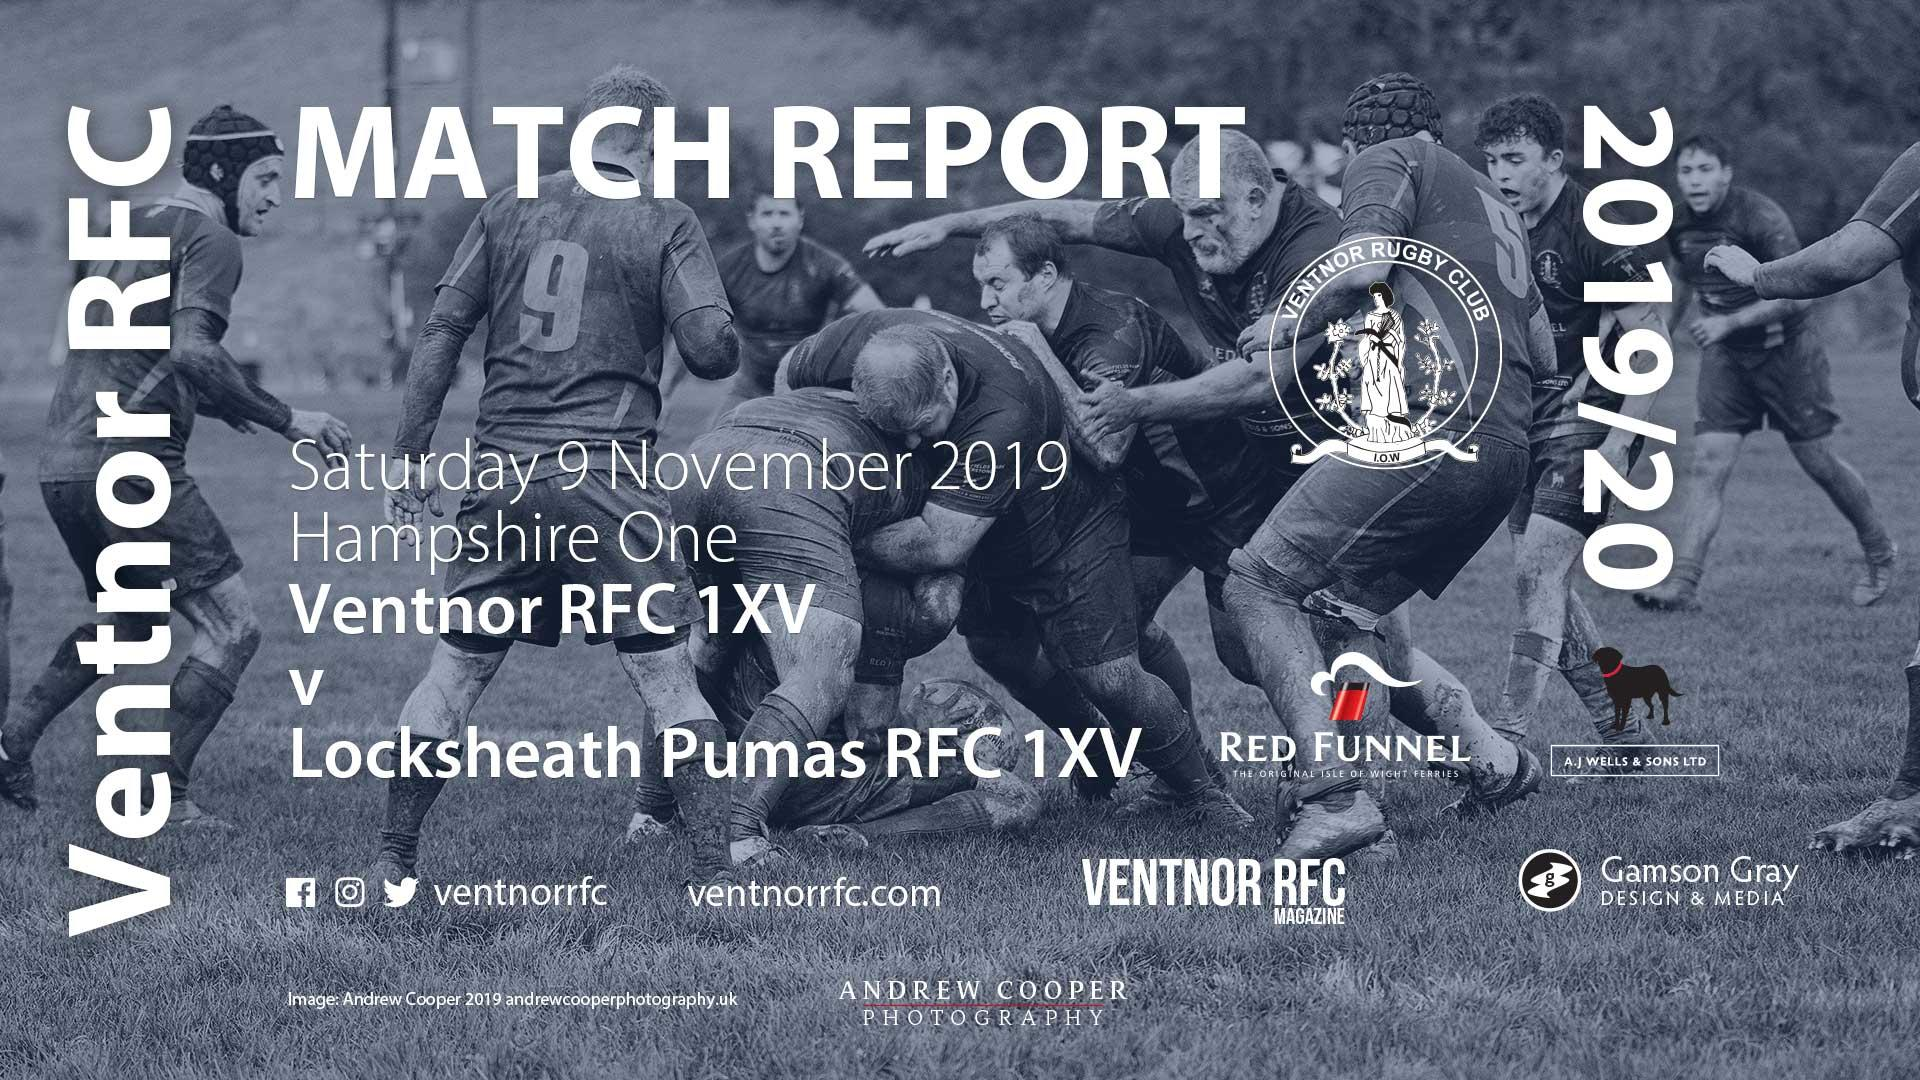 Ventnor RFC 1XV 8-36 Locksheath Pumas RFC 1XV, 9 Nov 2019